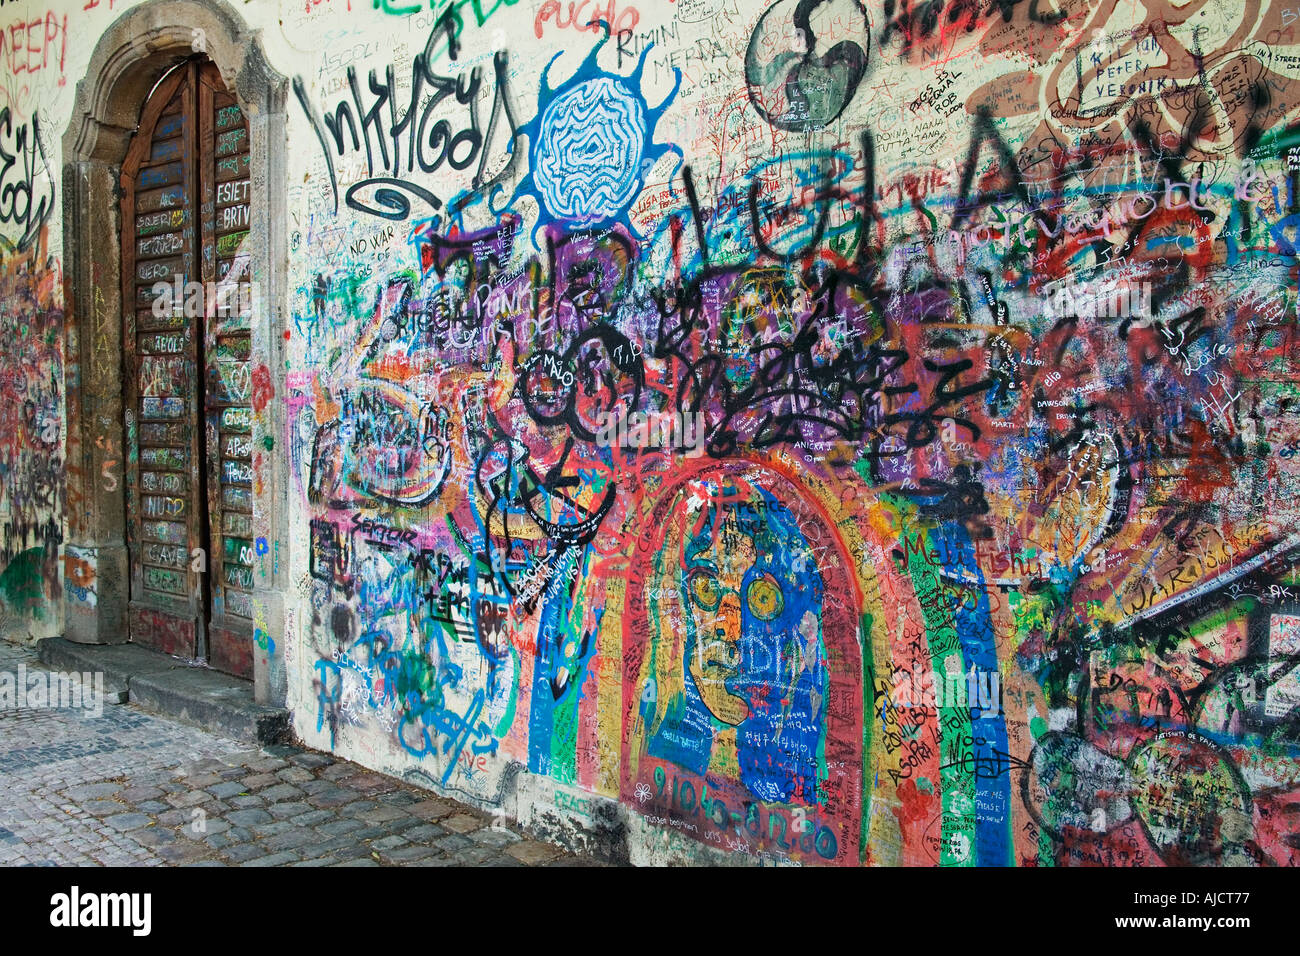 Graffitti covering the Lennon Wall opposite the French Embassy Wall came about by revolutionaries who inscribed anti government - Stock Image